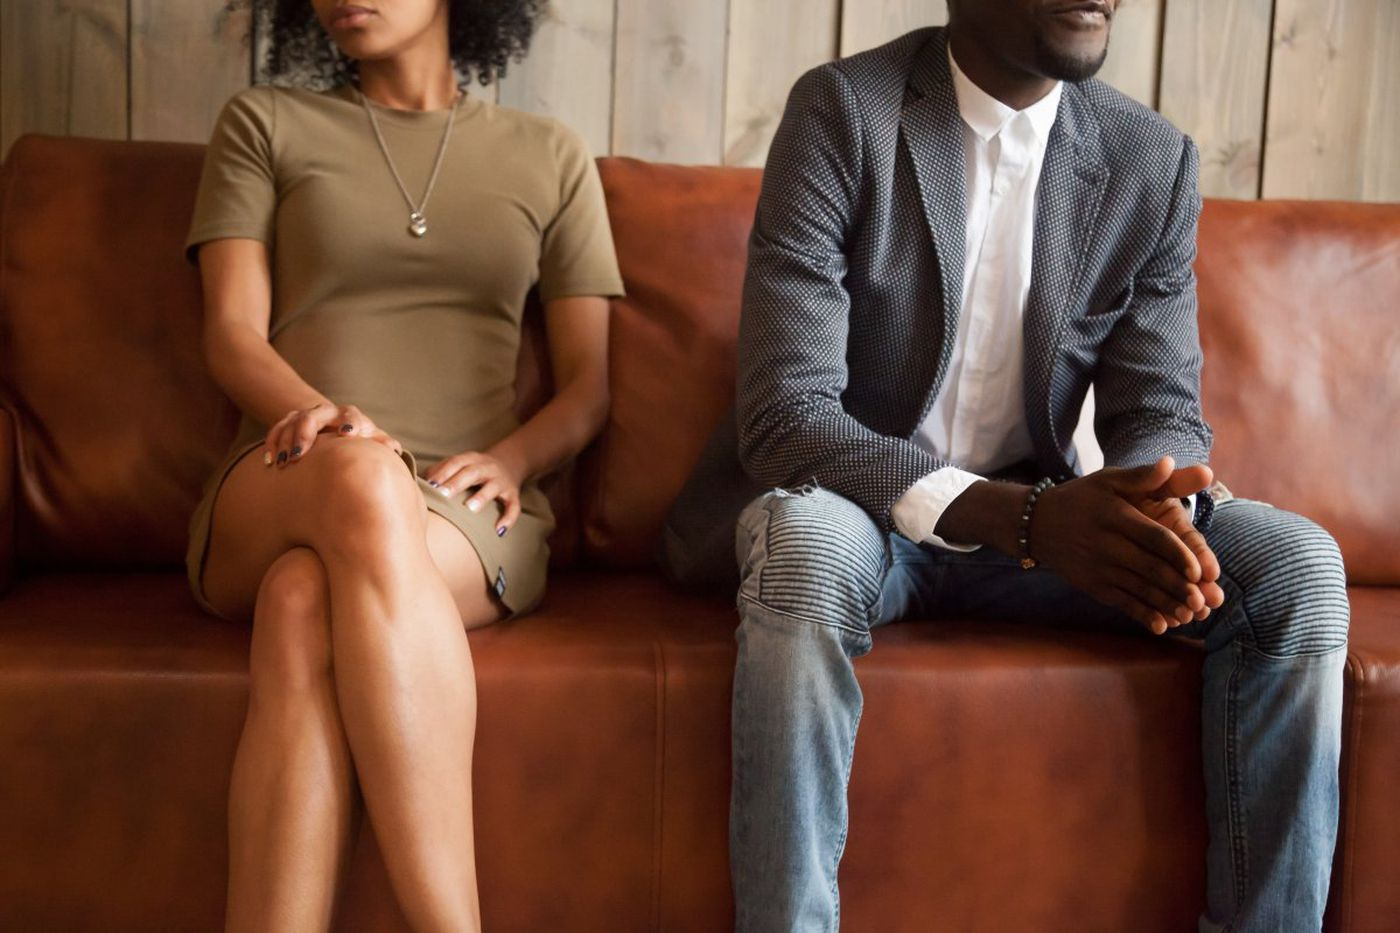 Fighting with your significant other can worsen chronic pain and symptoms of diabetes https://t.co/ivTZlovjkE https://t.co/Km2UlZimDV